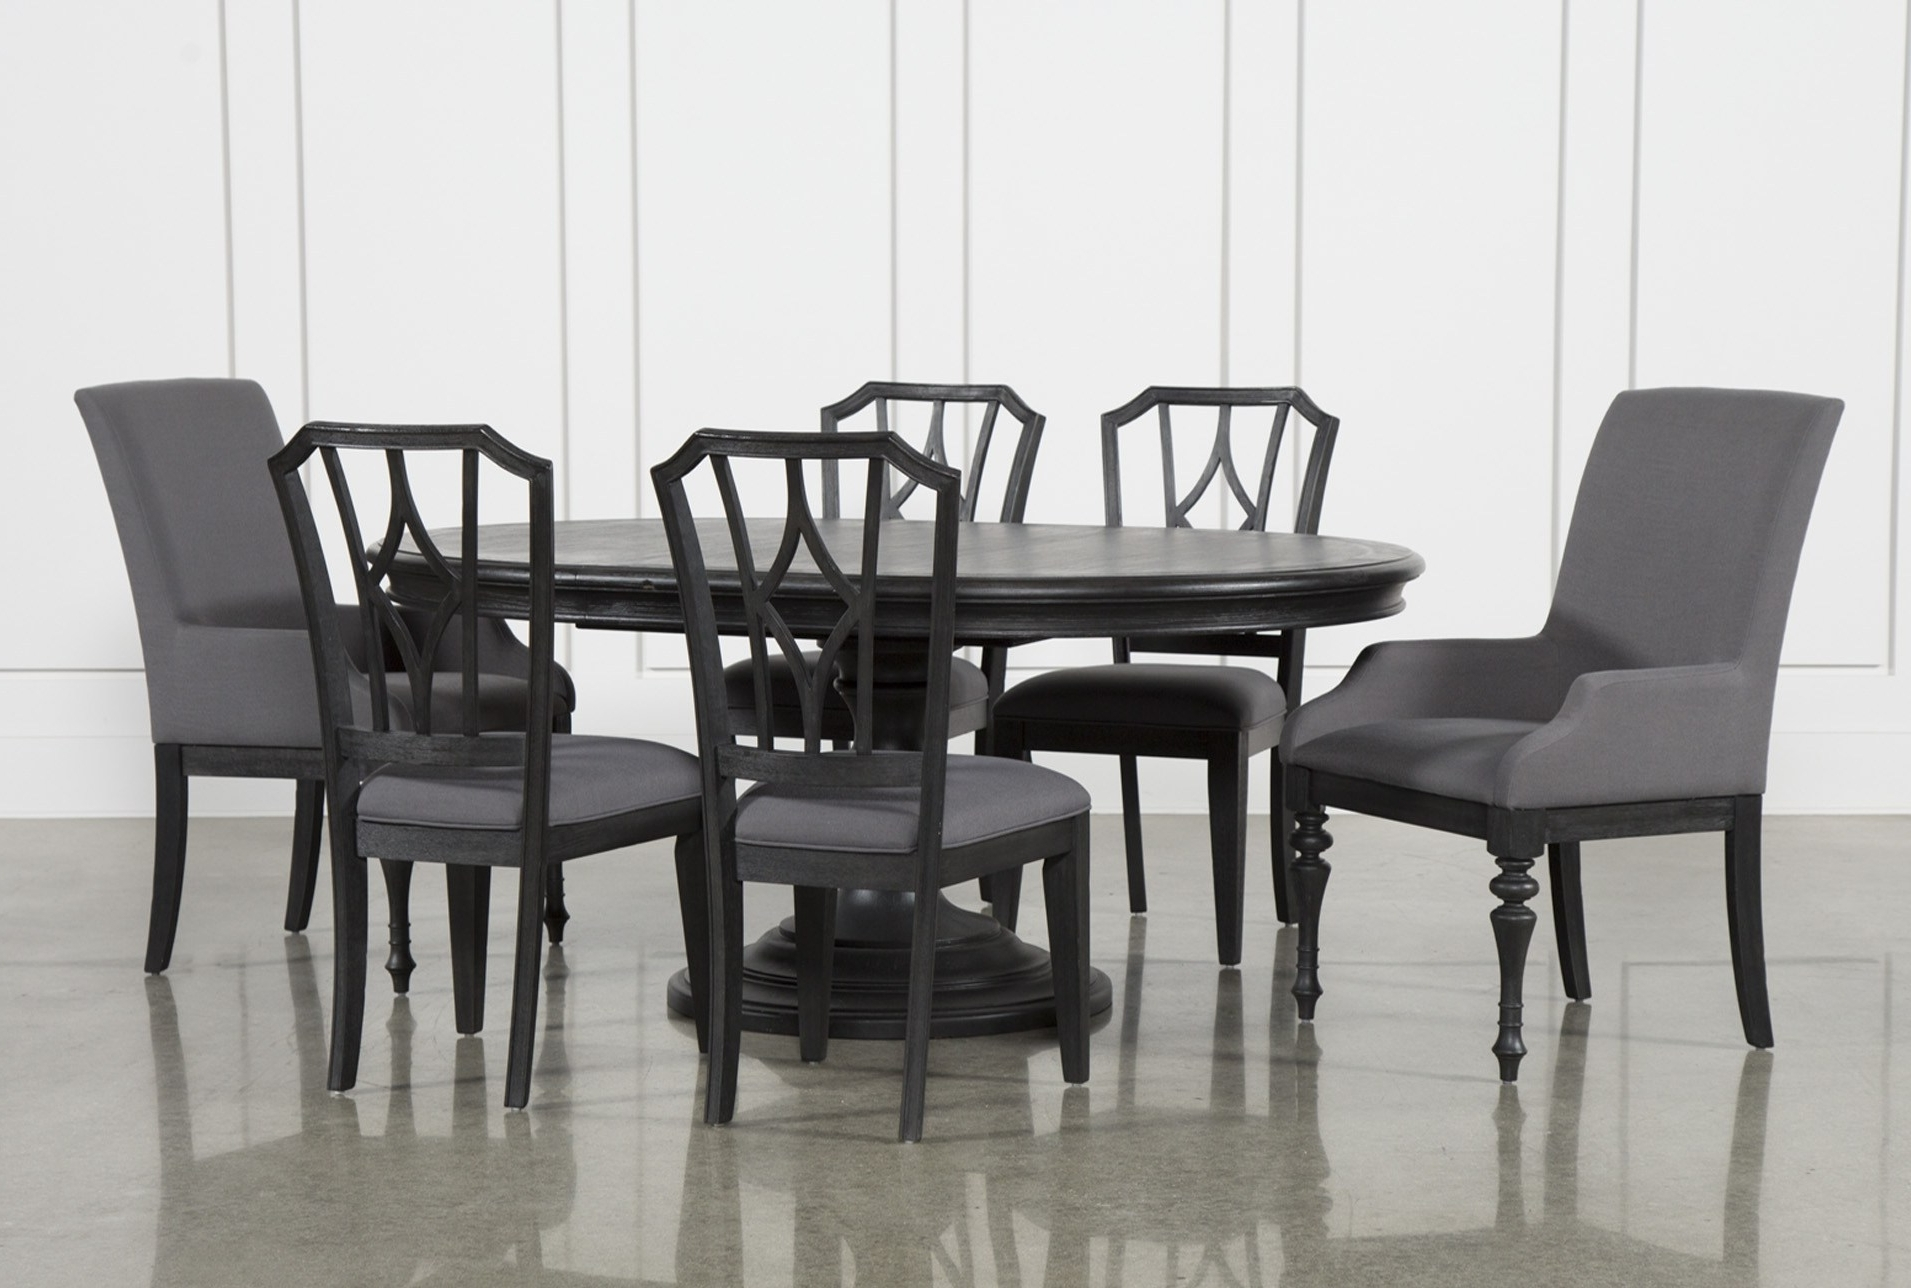 Delfina 7 Piece Dining Sets inside Best and Newest Sophisticated Caira Black Piece Set Chairs Diamond Back Chairs Has